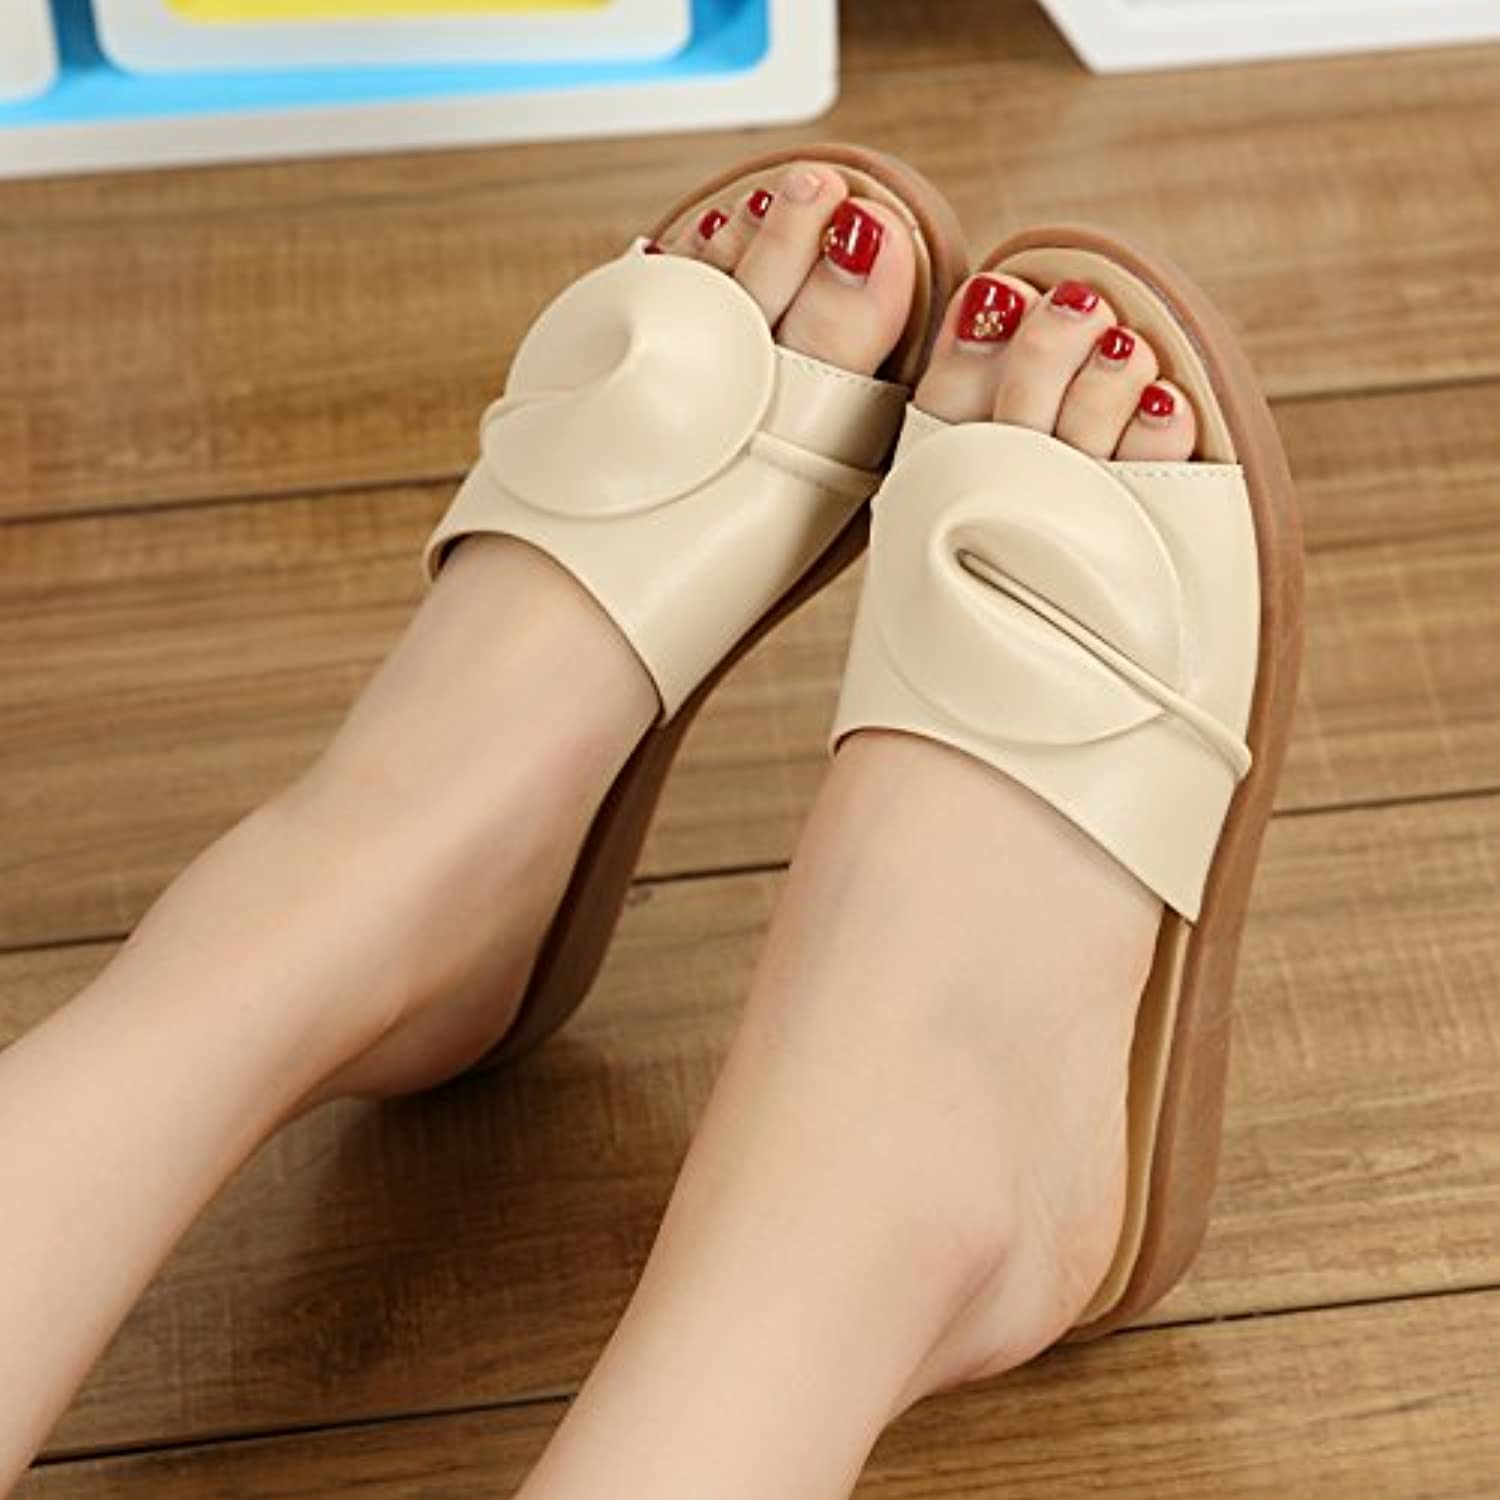 fankou Flat Bottom Cool Summer Sandals Fashion Sandals Sandals Fashion Female Stylish Outdoor Cool Slippers,35,A Color - B07CG8KXBW - 91ea92